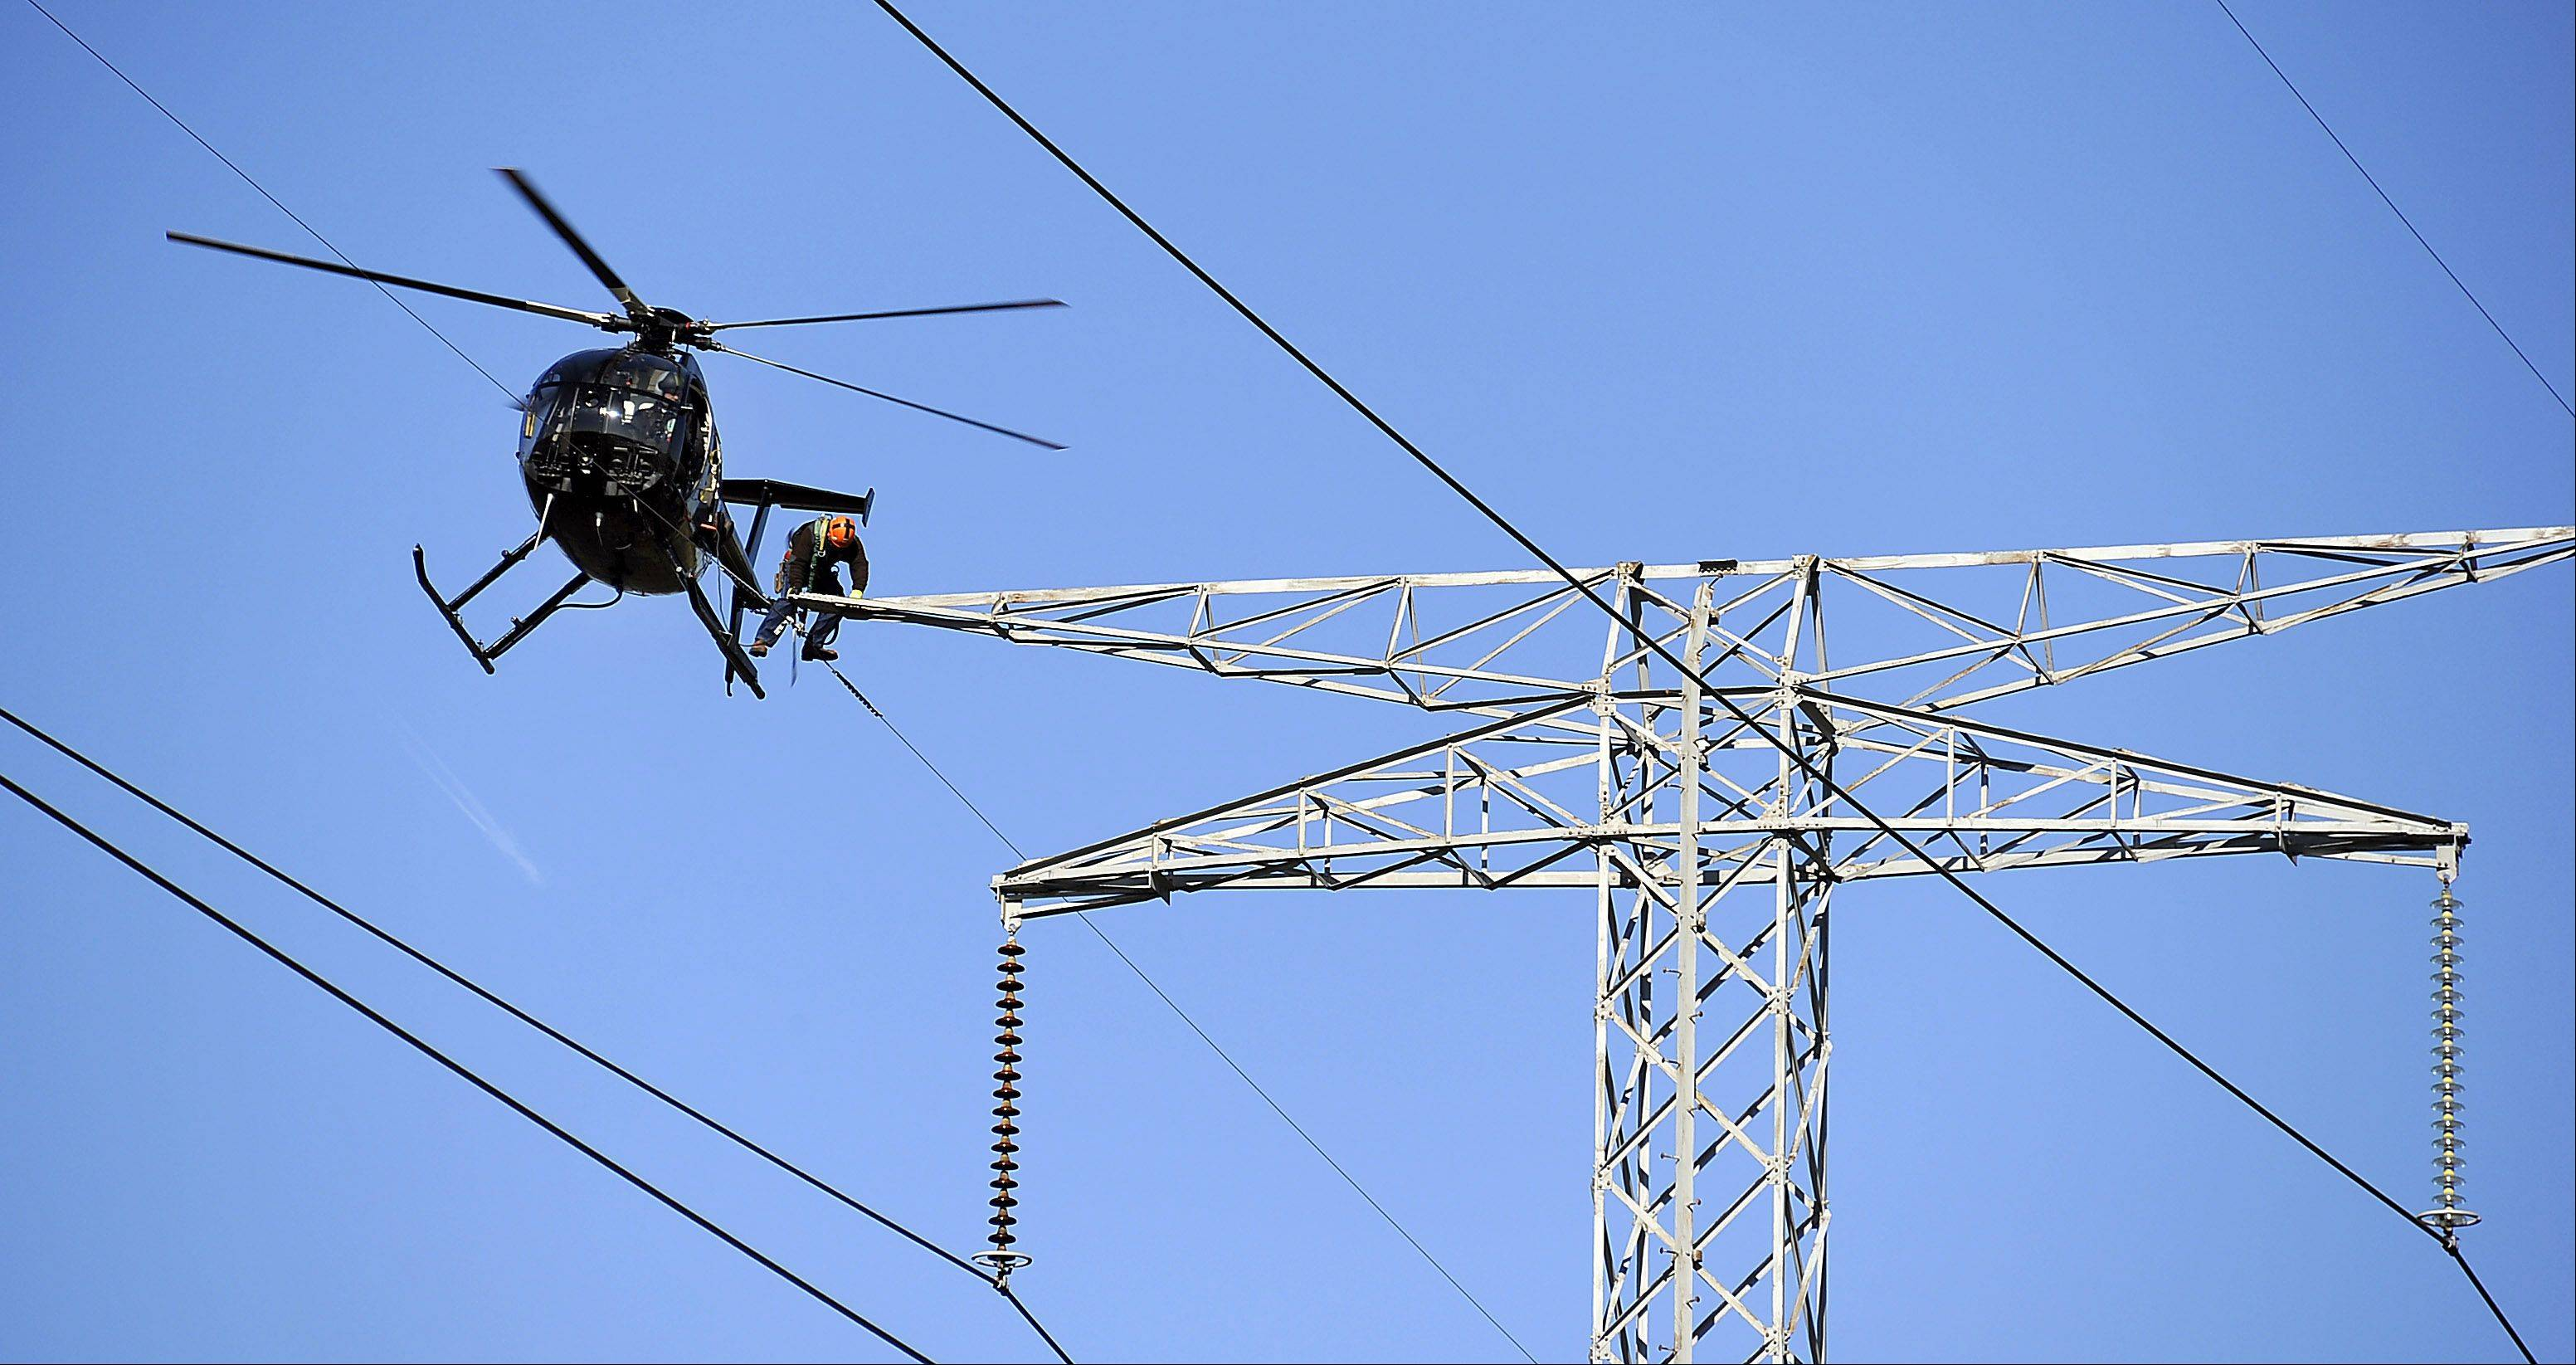 Pilot Brian Anderson gently positions the helicopter inches above the 130-foot electrical tower so that the overhead electricians can get to work swapping out the porcelain insulators string for the new glass insulators string for improved service to ComEd customers.